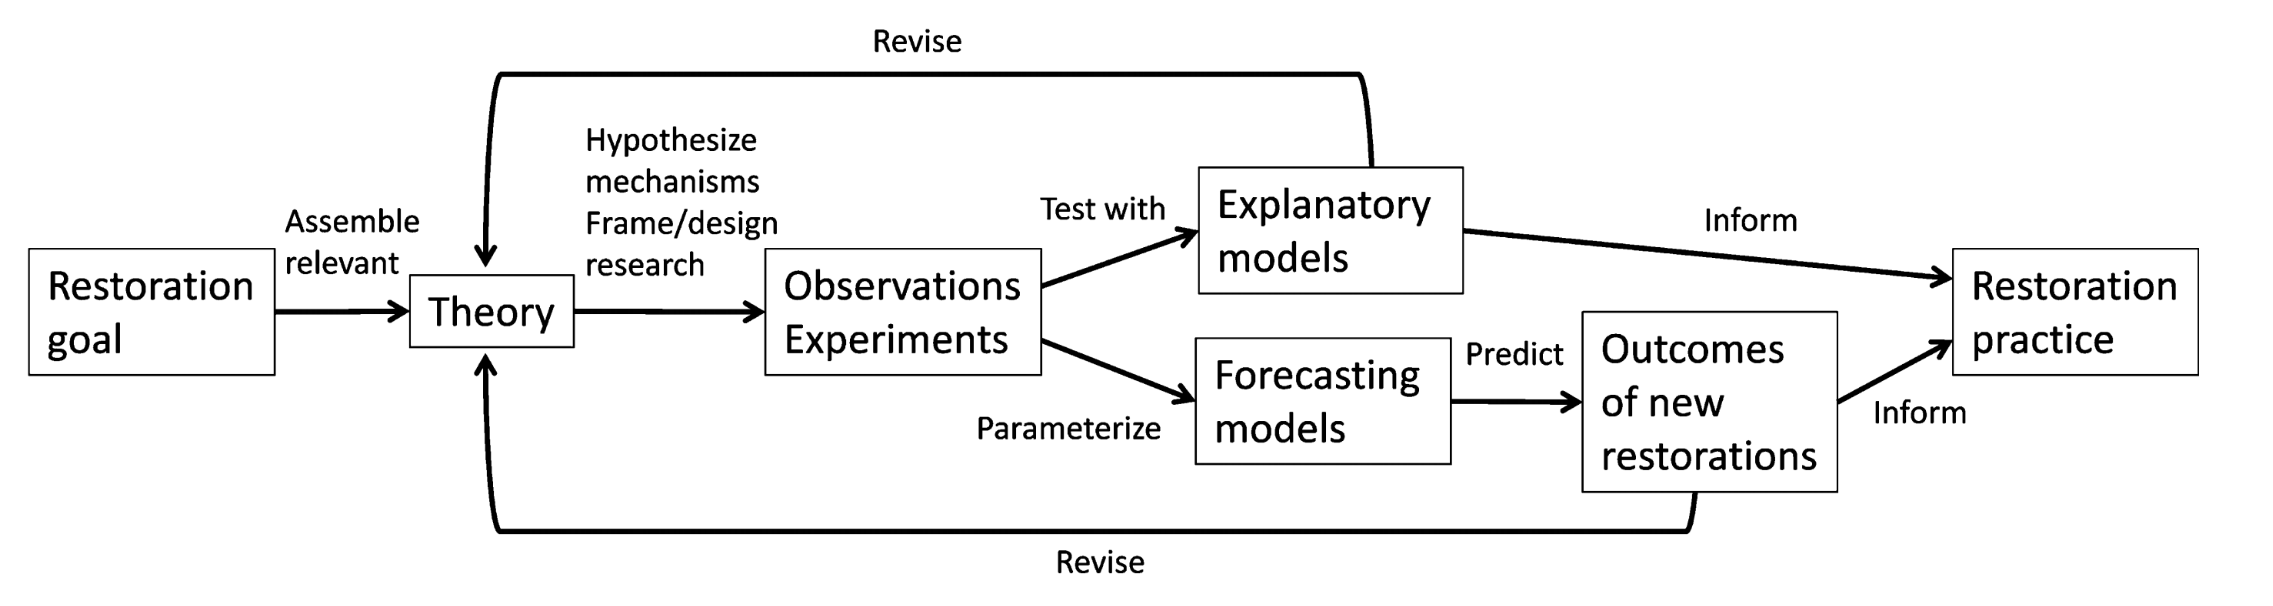 Fig. 2: A conceptual map illustrating how adaptive management can advance prediction and certainty in restoration ecology. Once restoration goals are set, theory-based observations and experiments are implemented and tested with explanatory and forecasting models. New insights from this monitoring are used to inform the current restoration practices, to predict the outcomes of new restoration projects, and to revise pre-existing theories. Adapting theory leads to new ideas for observations and experiments in an iterative process. Reproduced from Brudvig 2017.